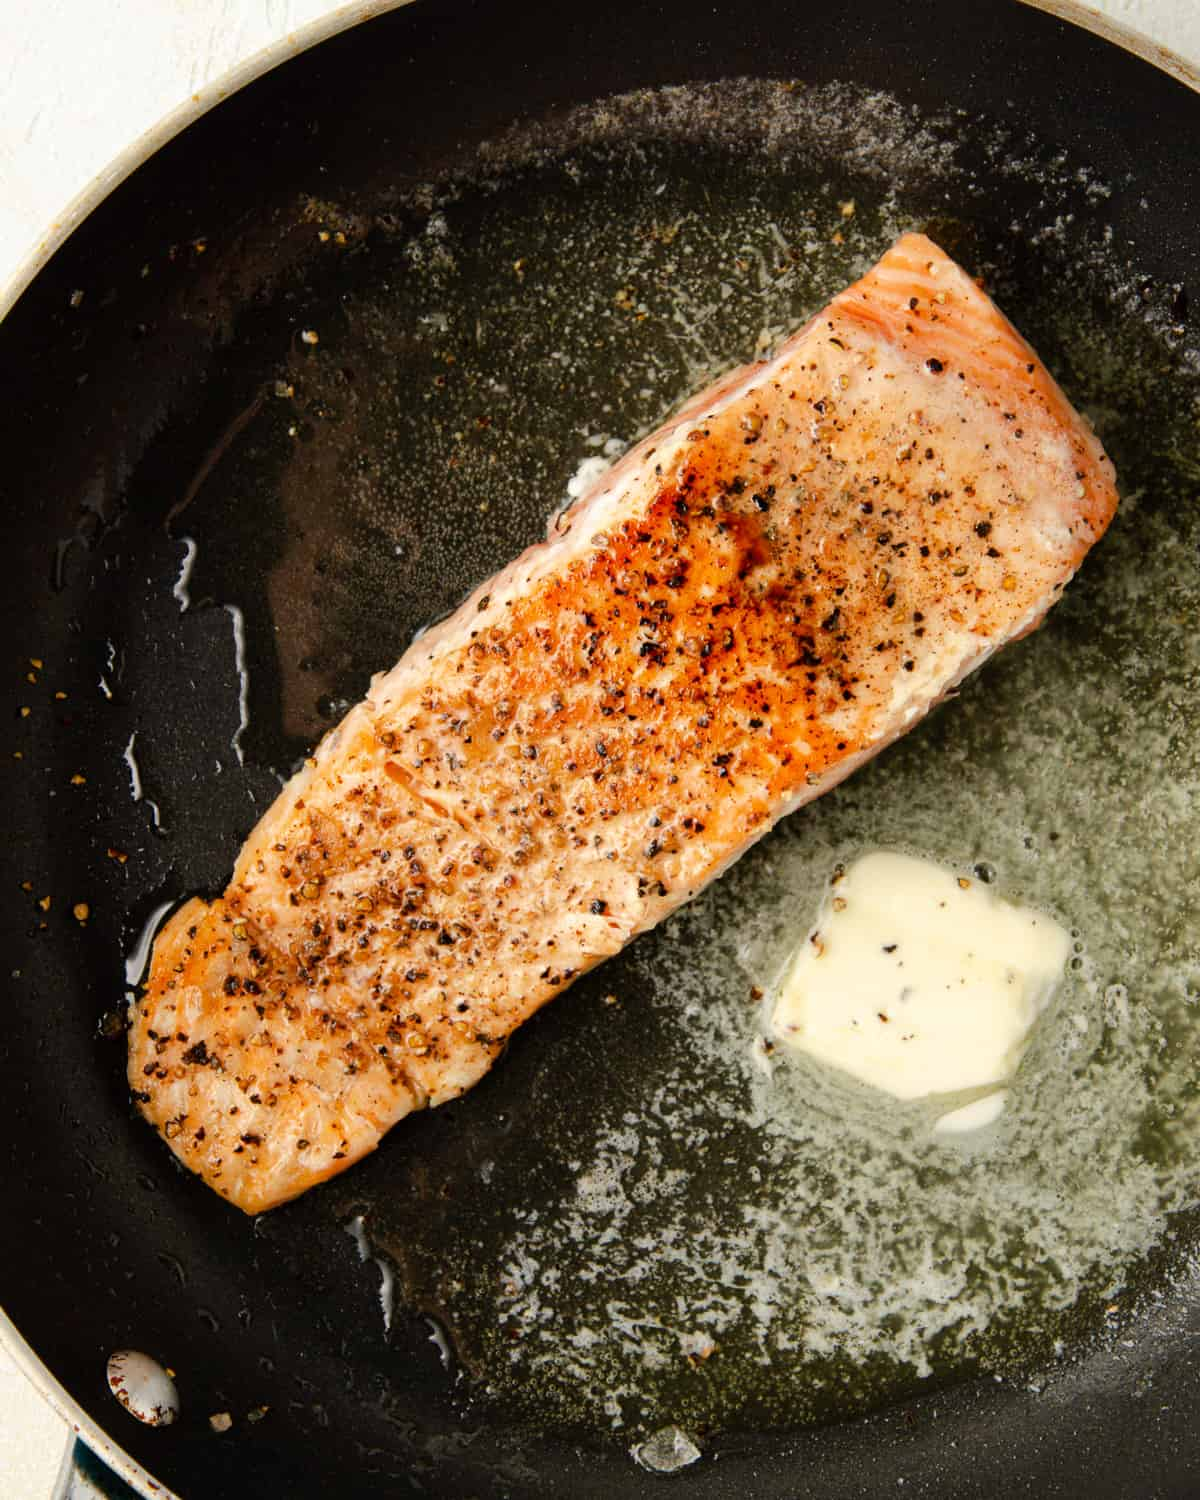 A pan seared salmon filet in the pan with butter.